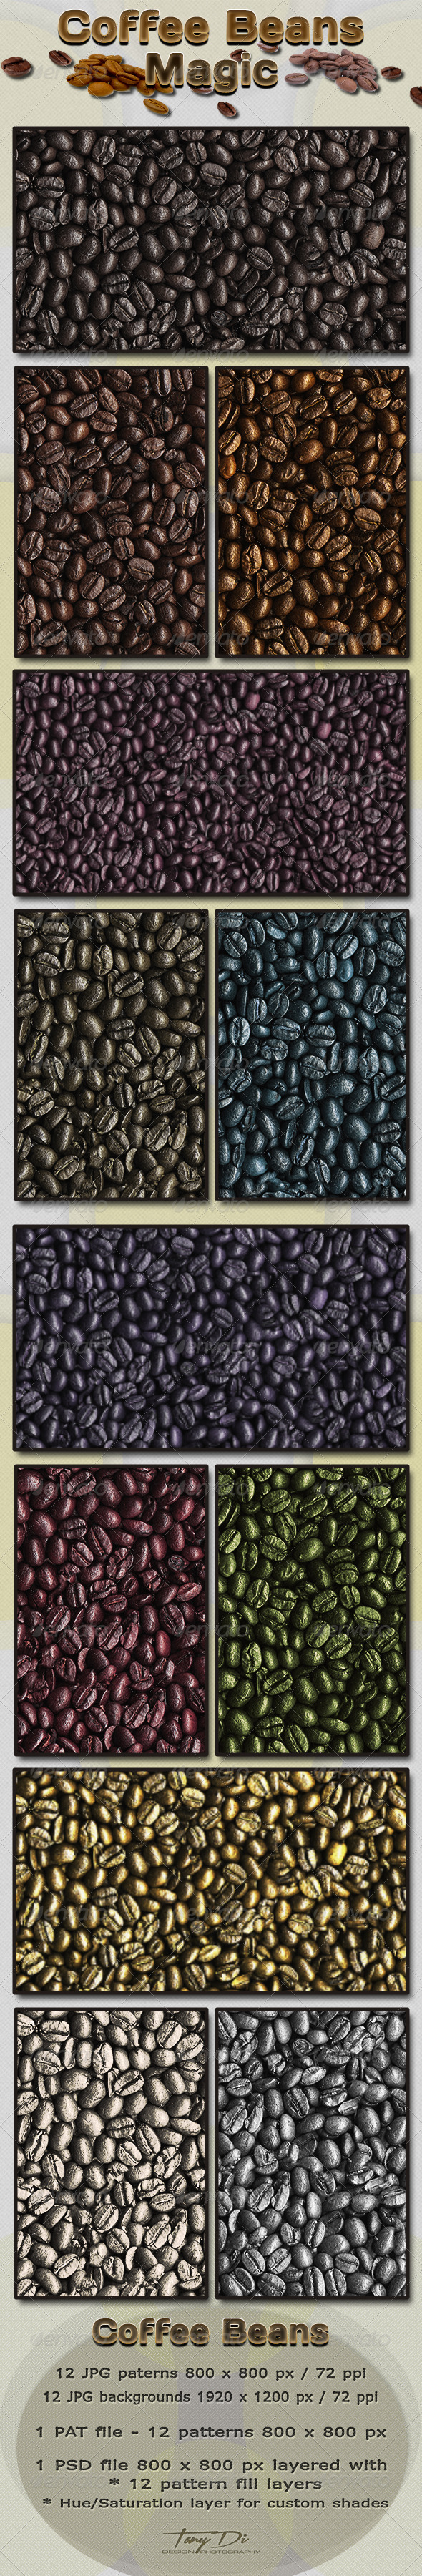 GraphicRiver Coffee Beans Magic 3928657